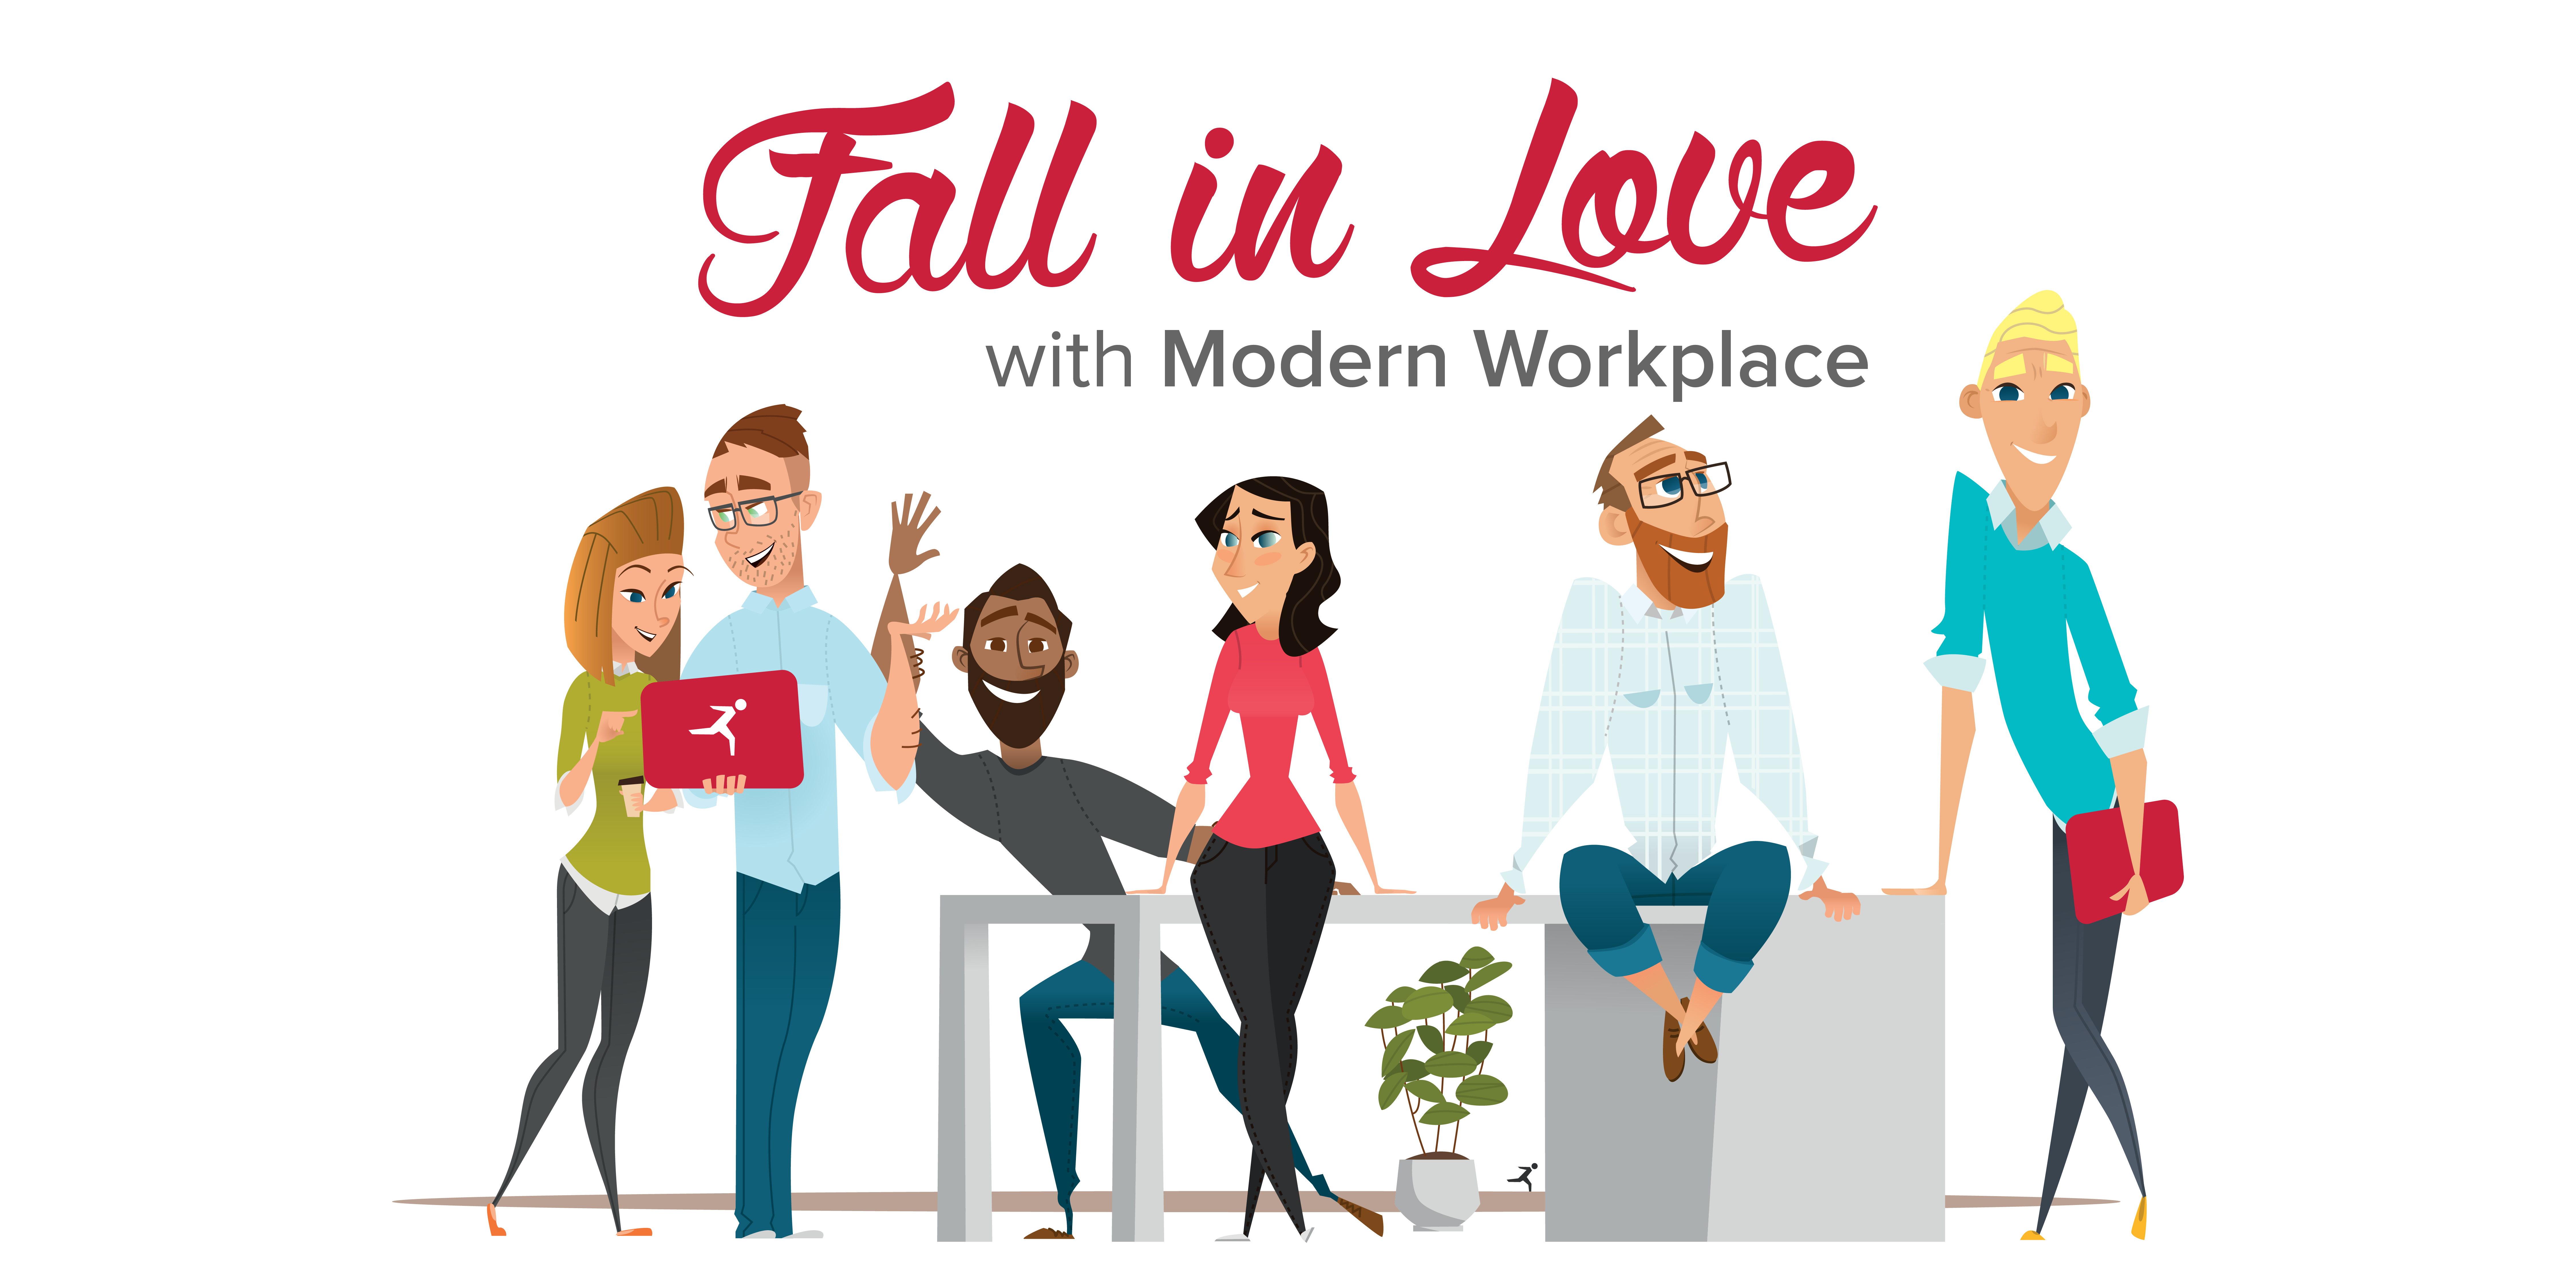 Fall in Love with the Modern Workplace